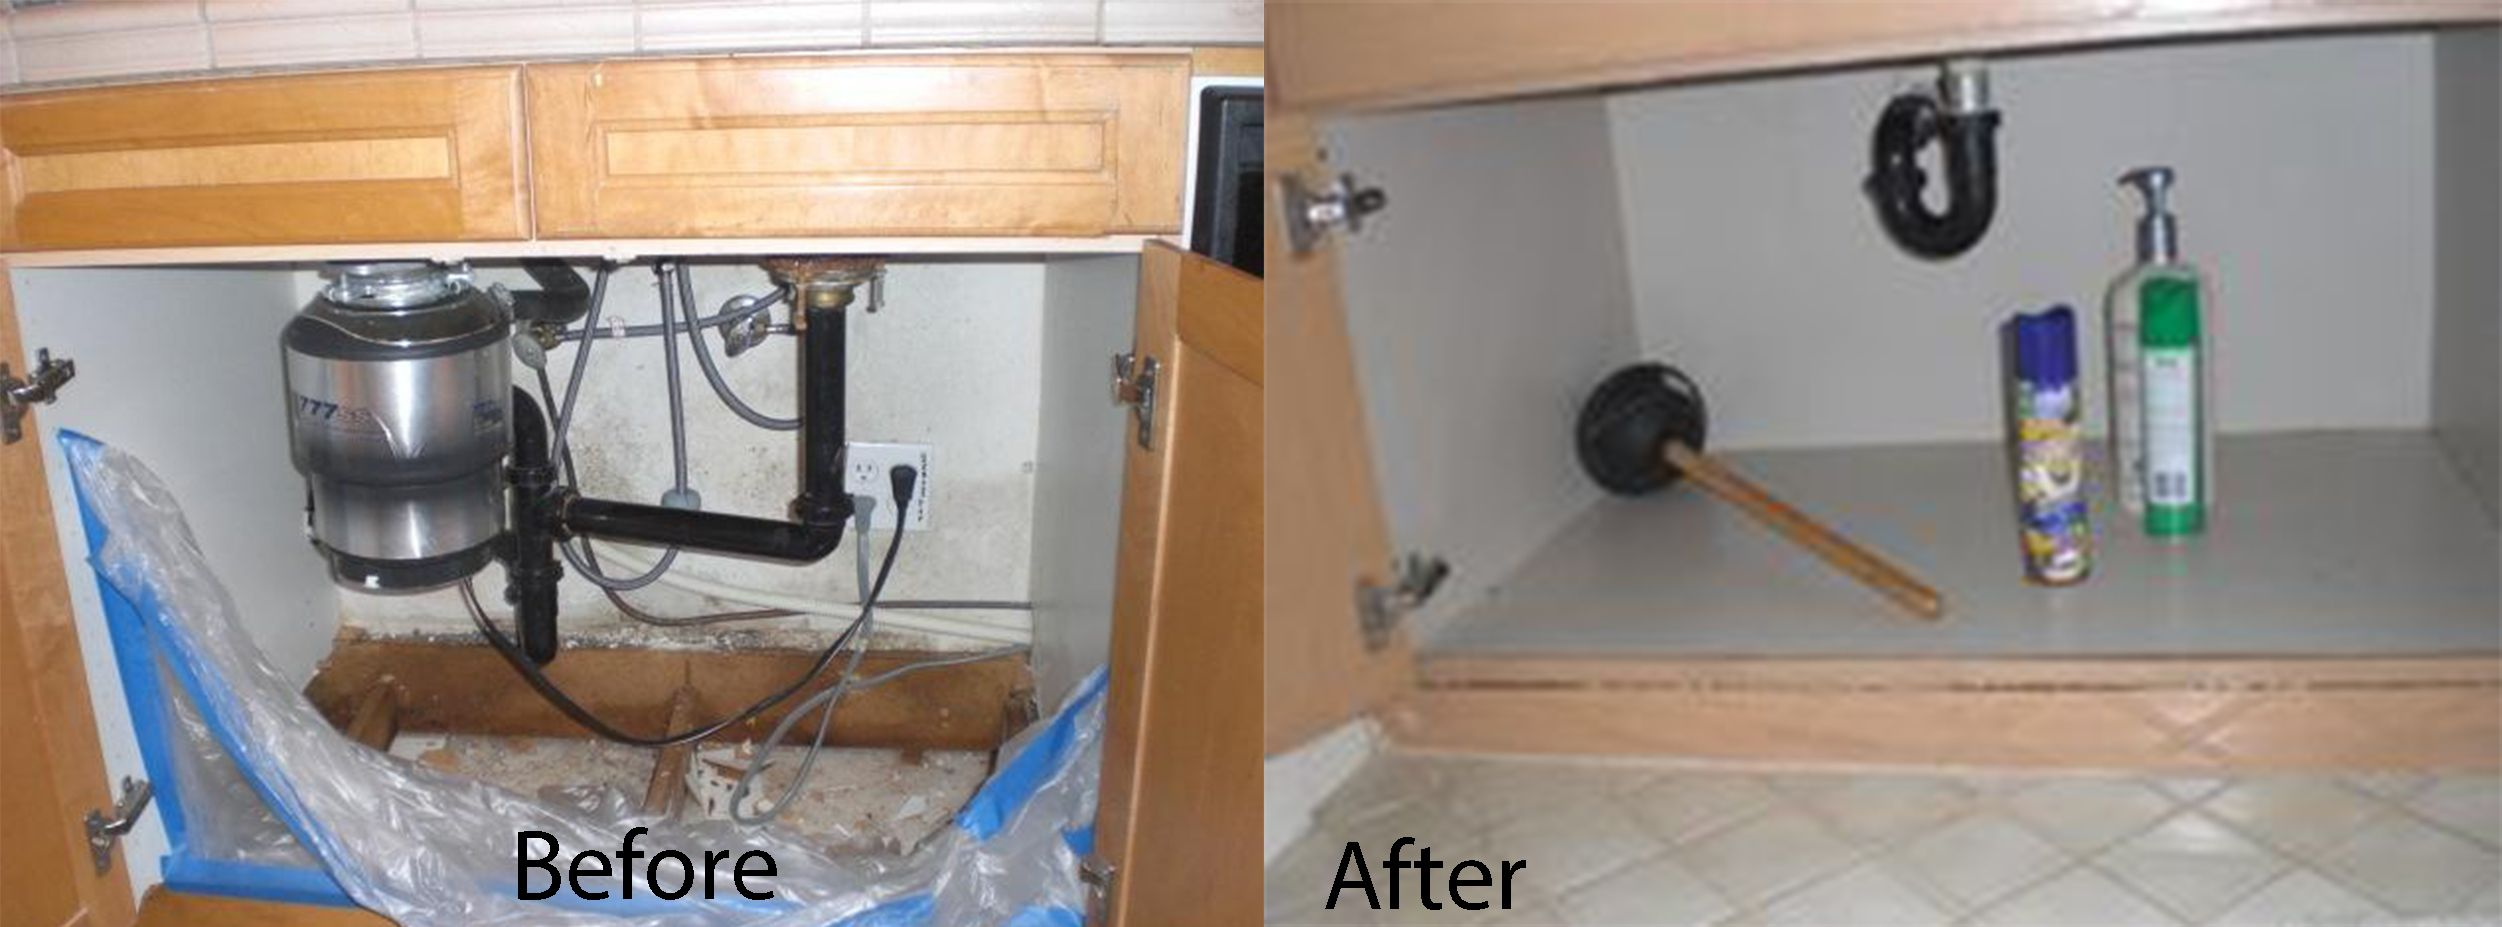 Before and after leaking sink damaged the bottom of the